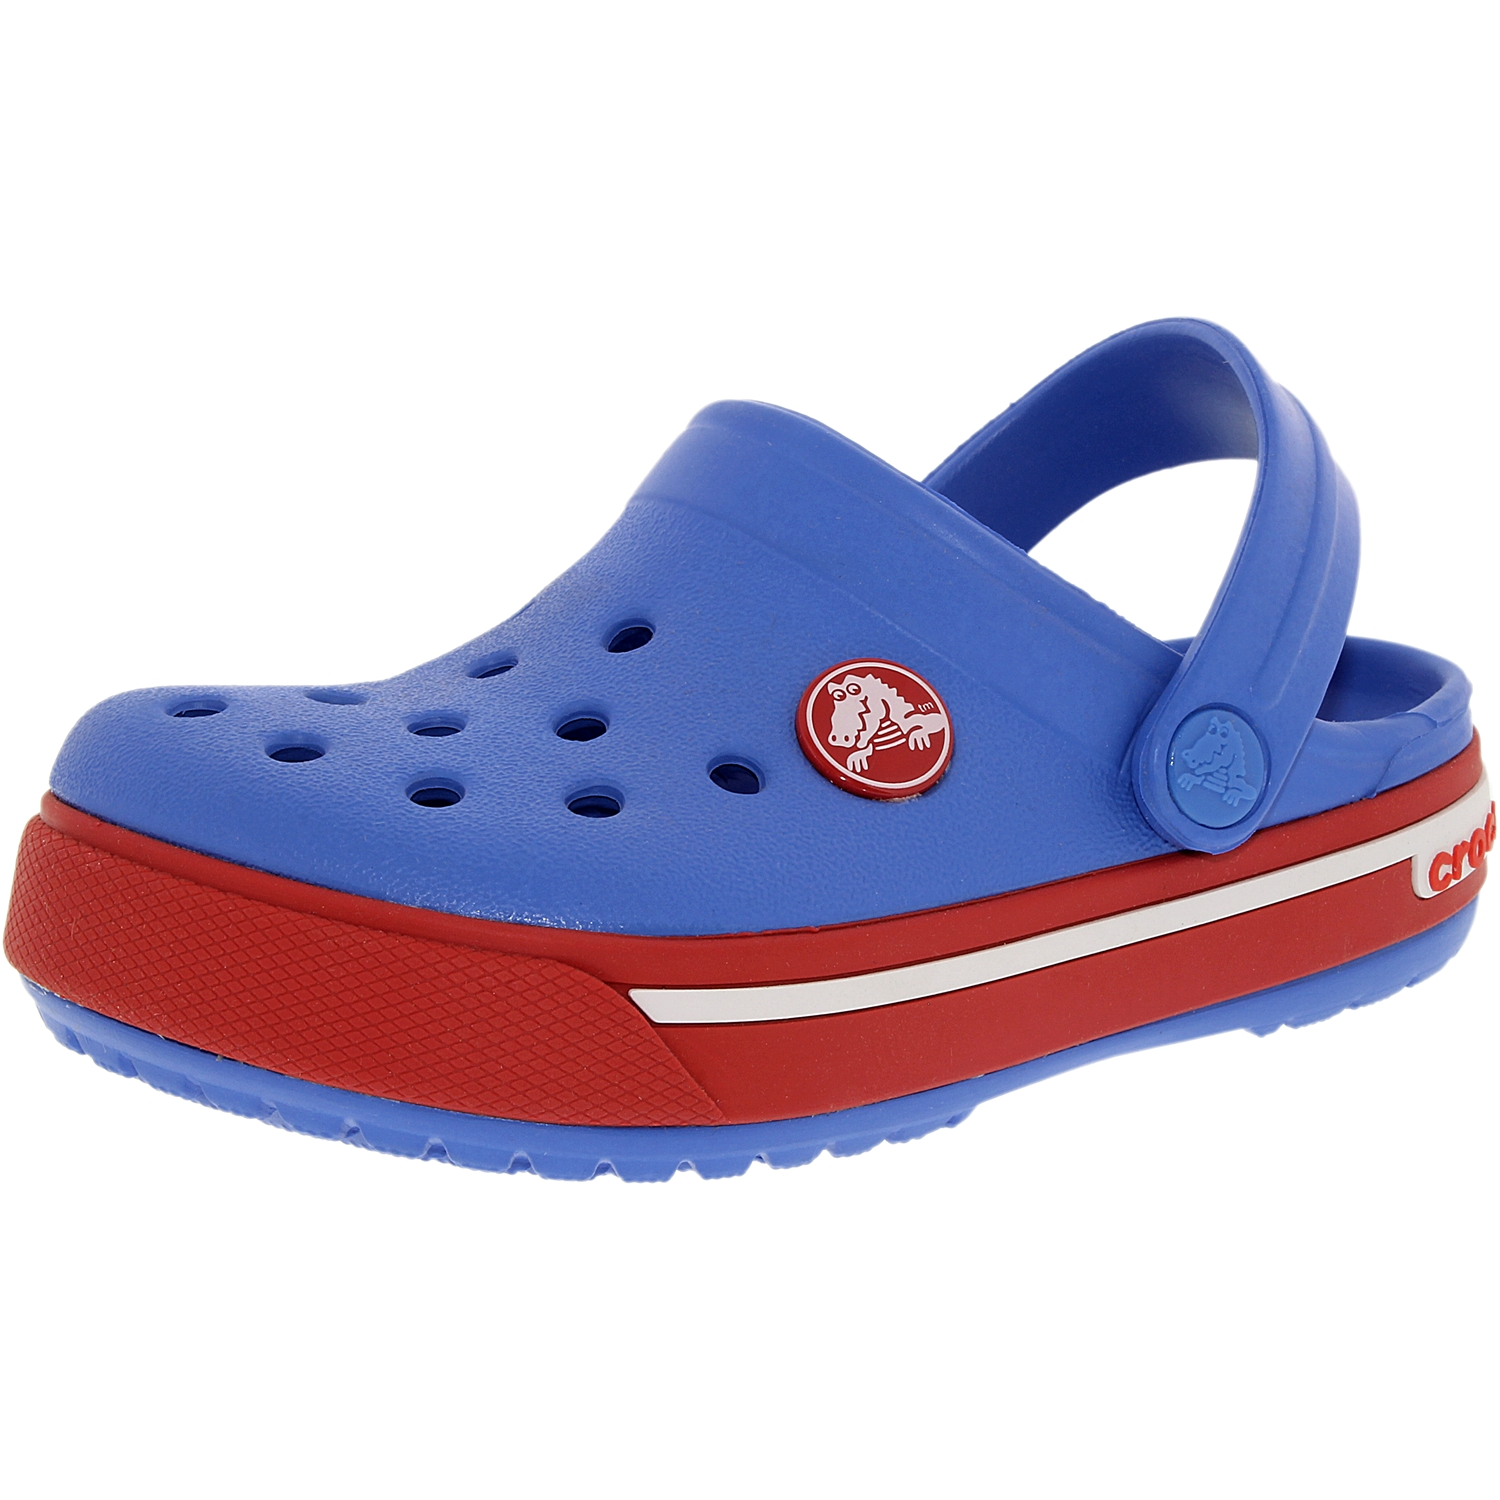 Crocs Boy's Kids Crocband II.5 Ankle-High Rubber Sandal by Crocs